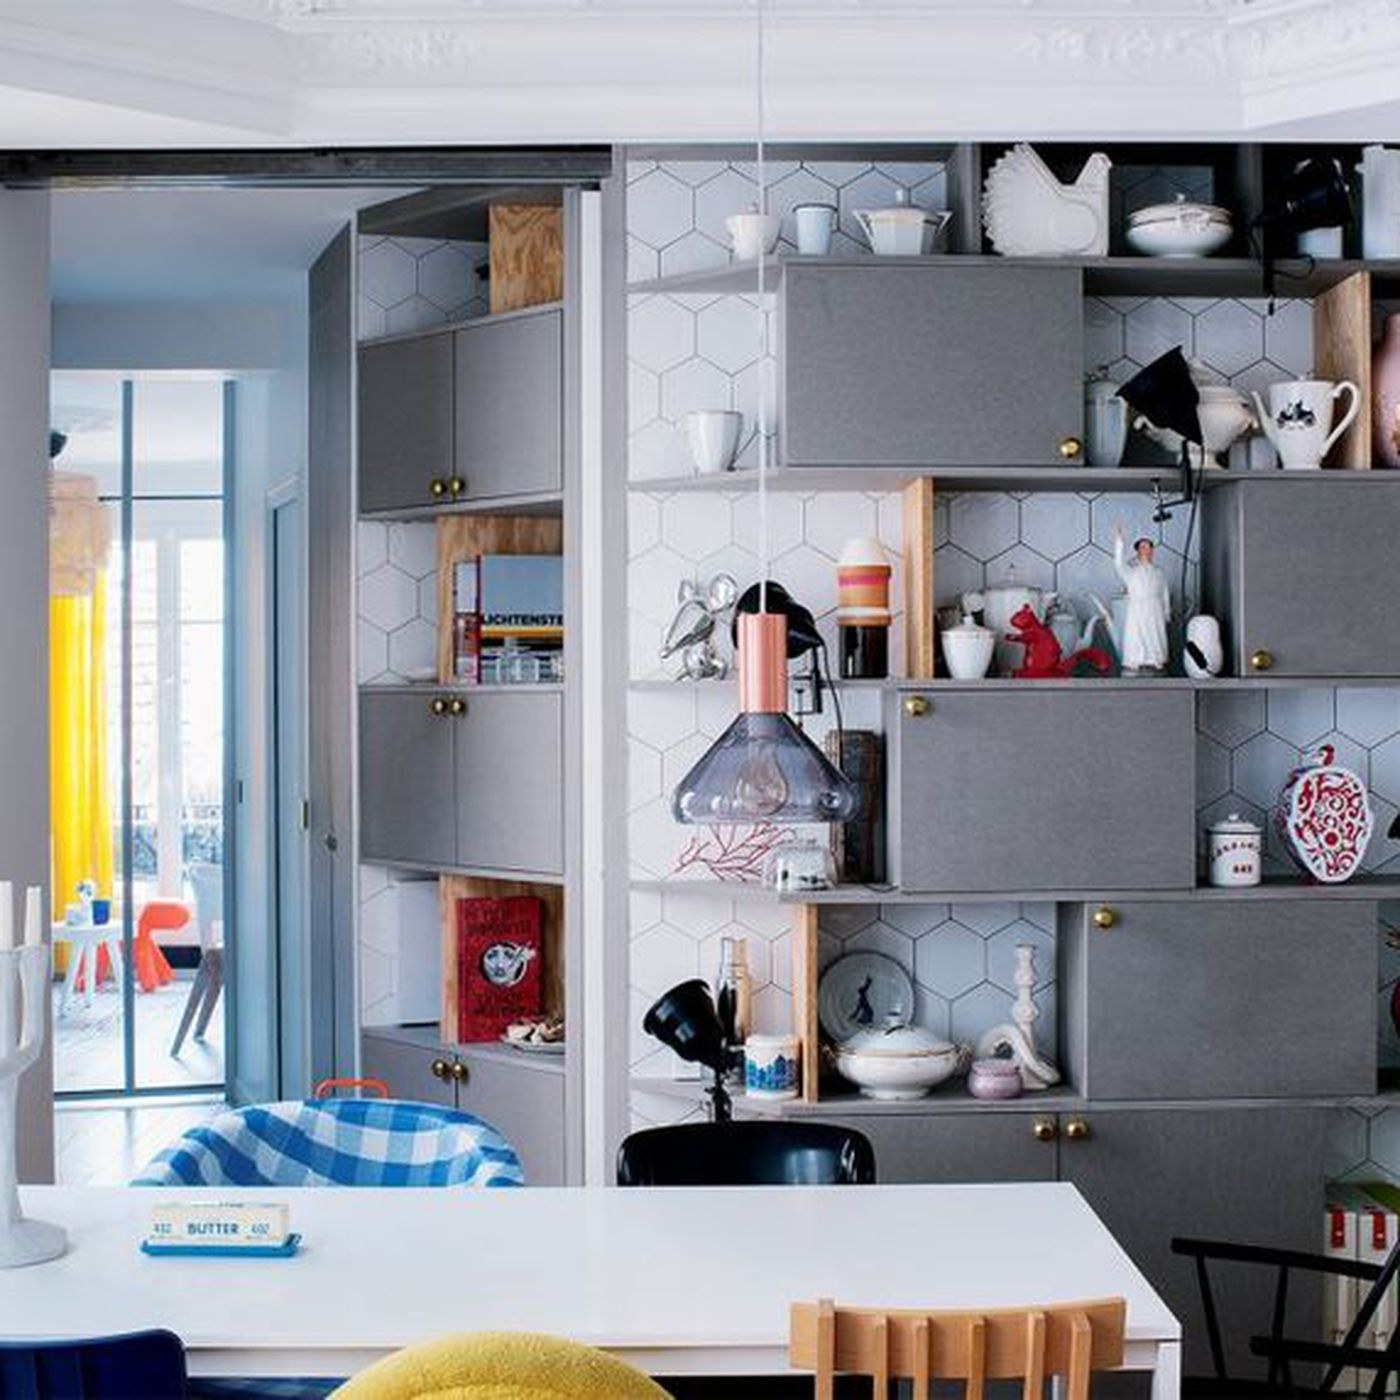 Studio Jean Marc Gady 5 renovation and decor tips from chic paris apartments - curbed